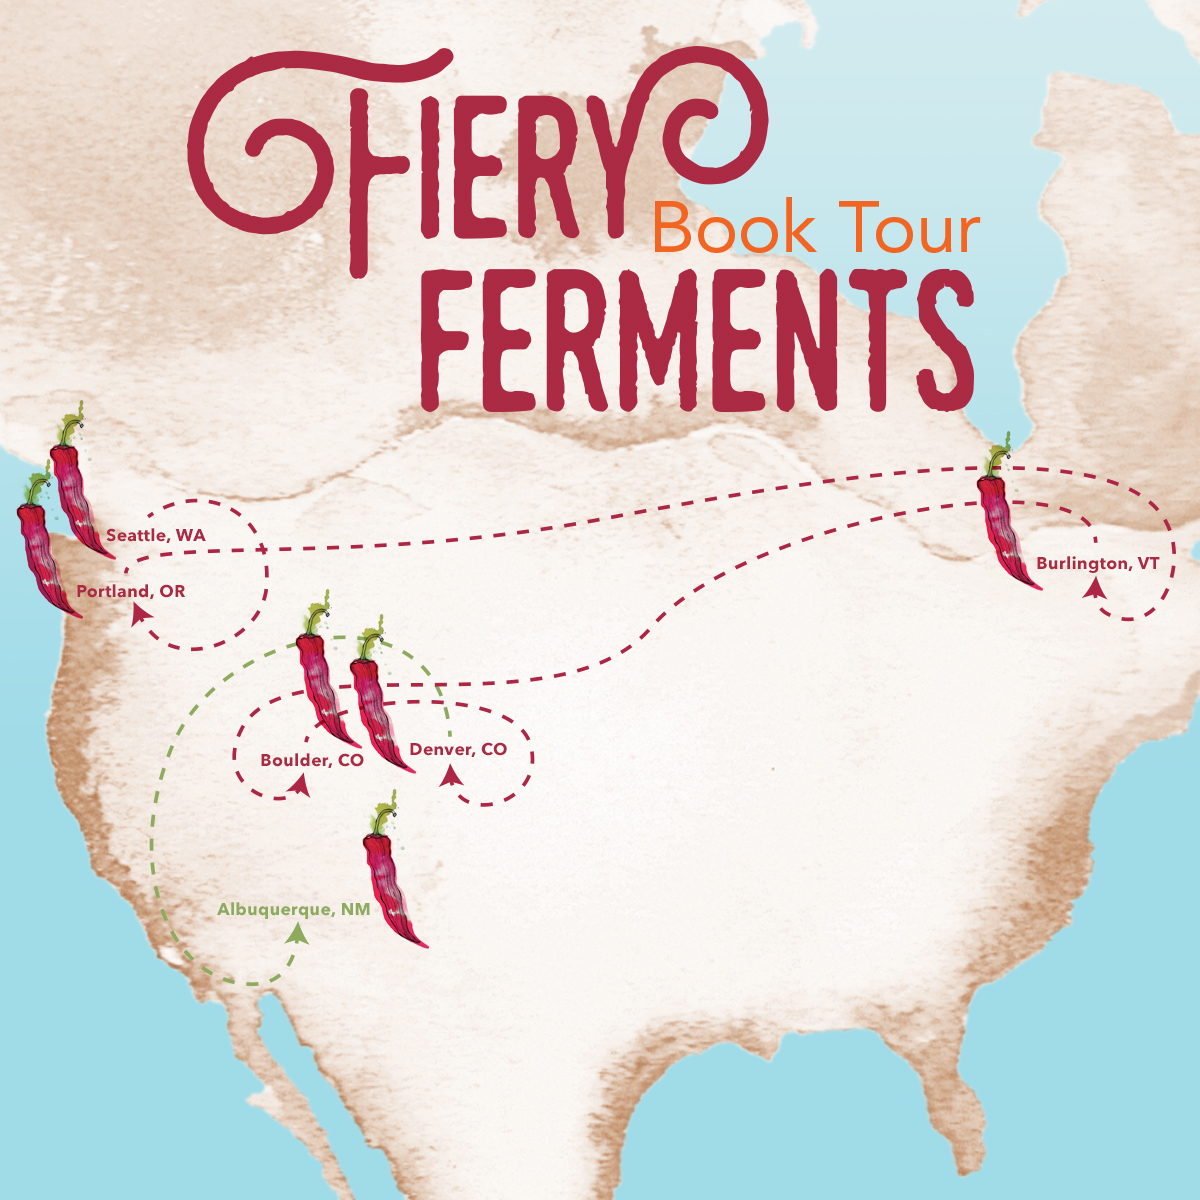 FieryFermentsBookTour-NewMexico